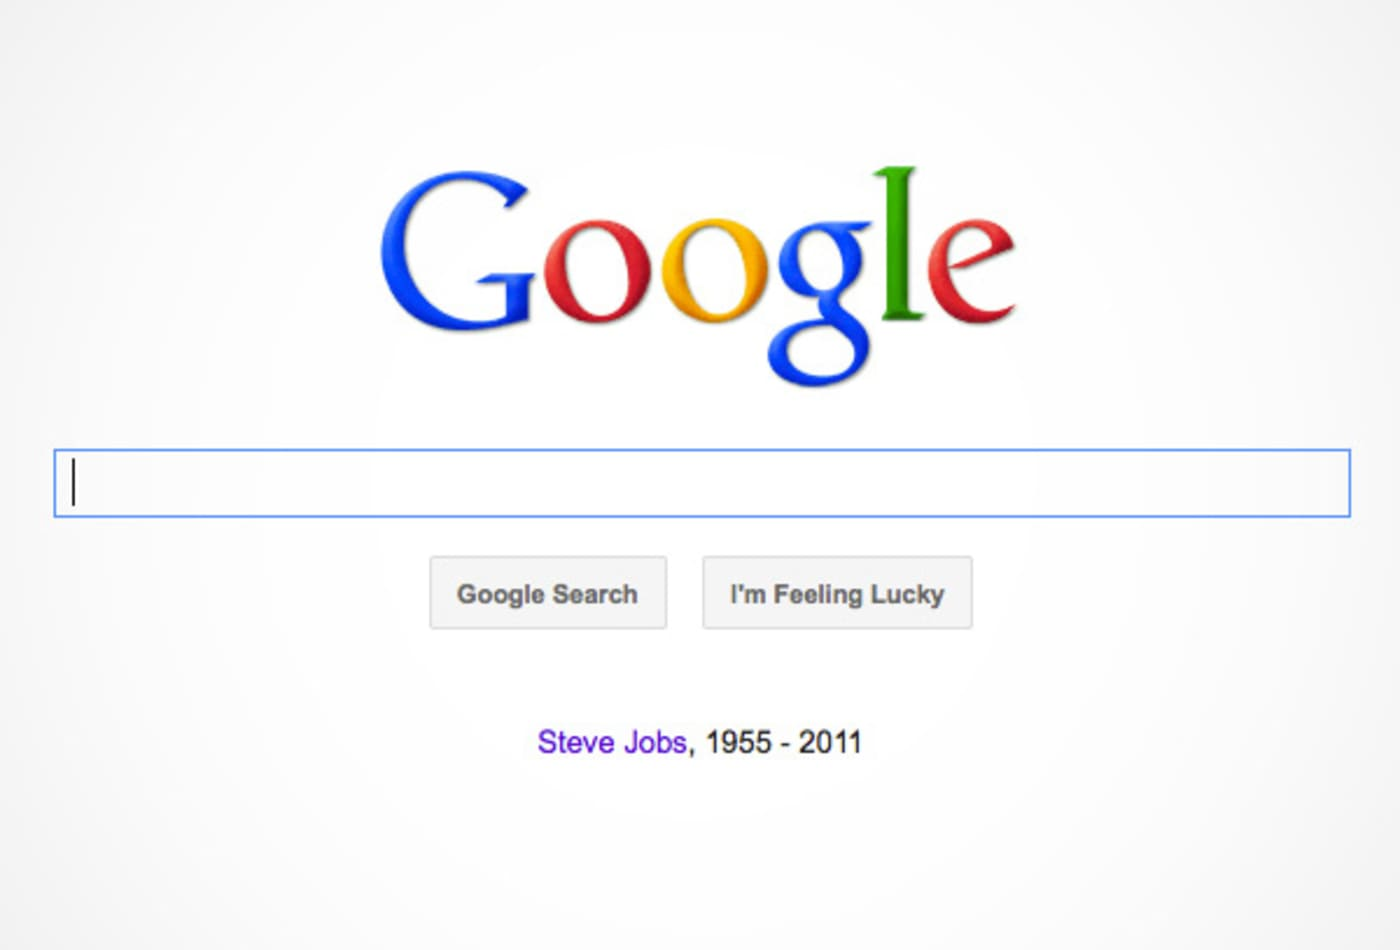 steve-jobs-passed-away-remembering-cnbc-5.jpg